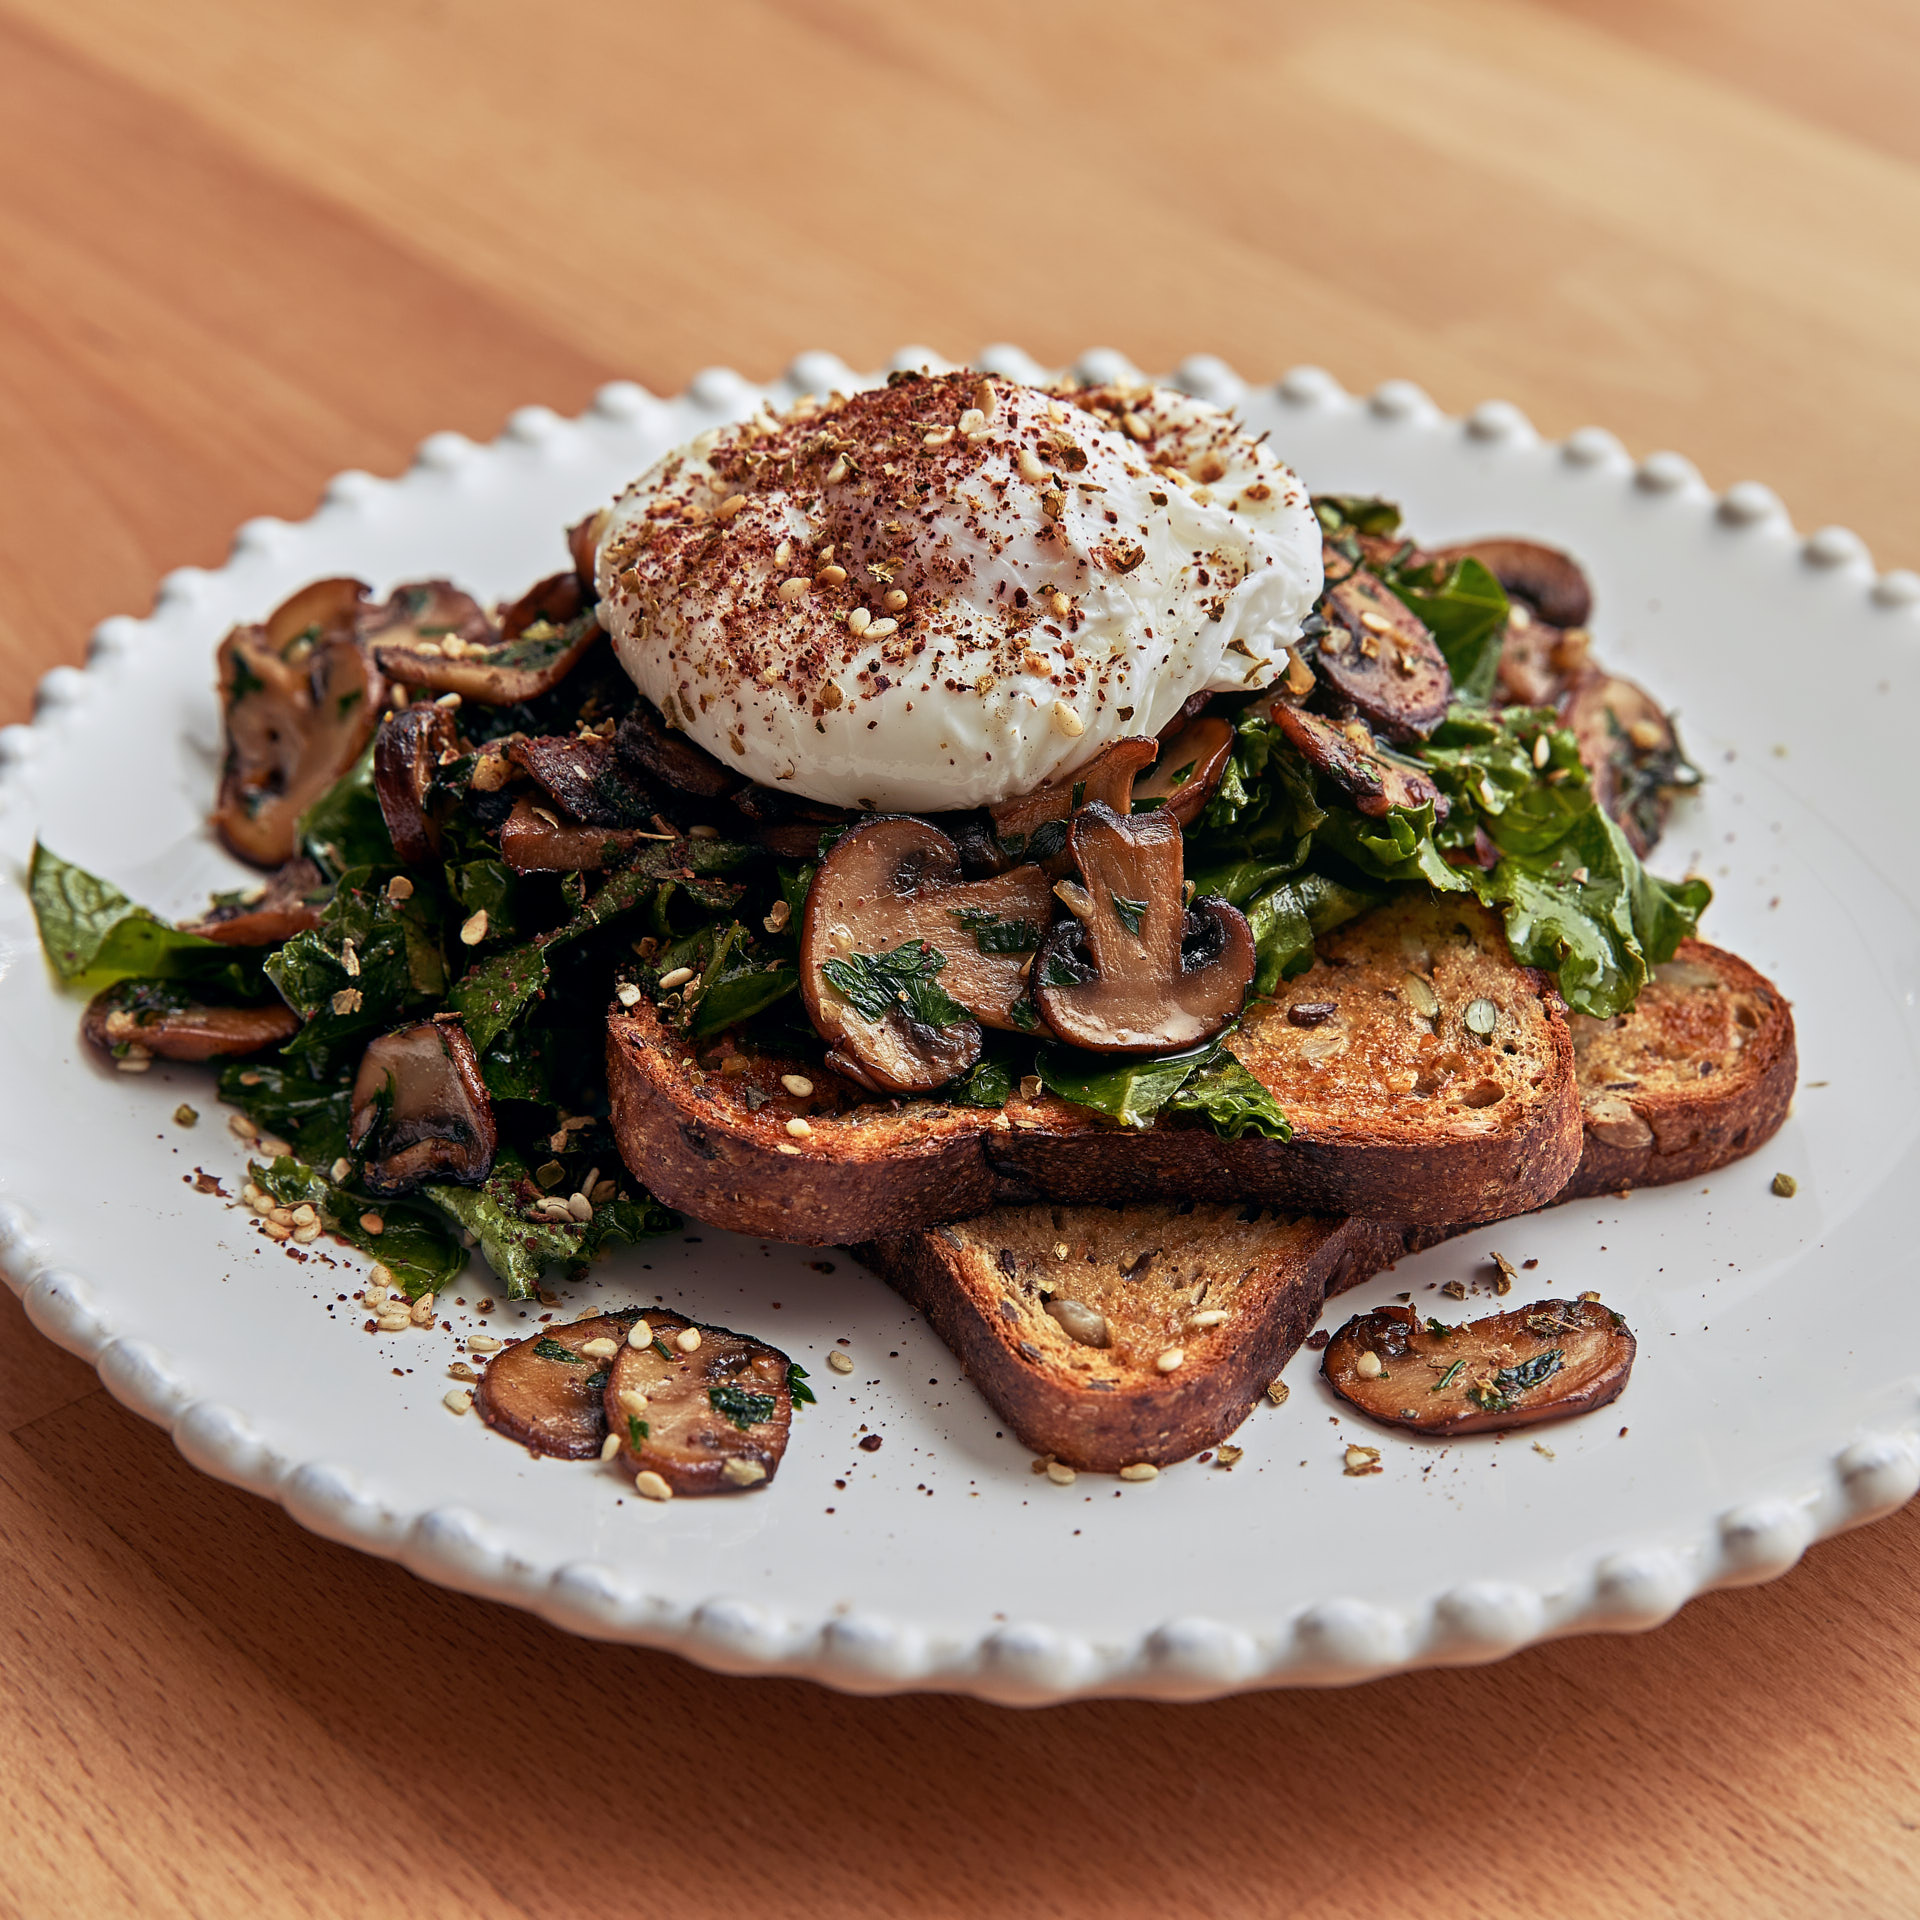 Mushrooms and poached egg